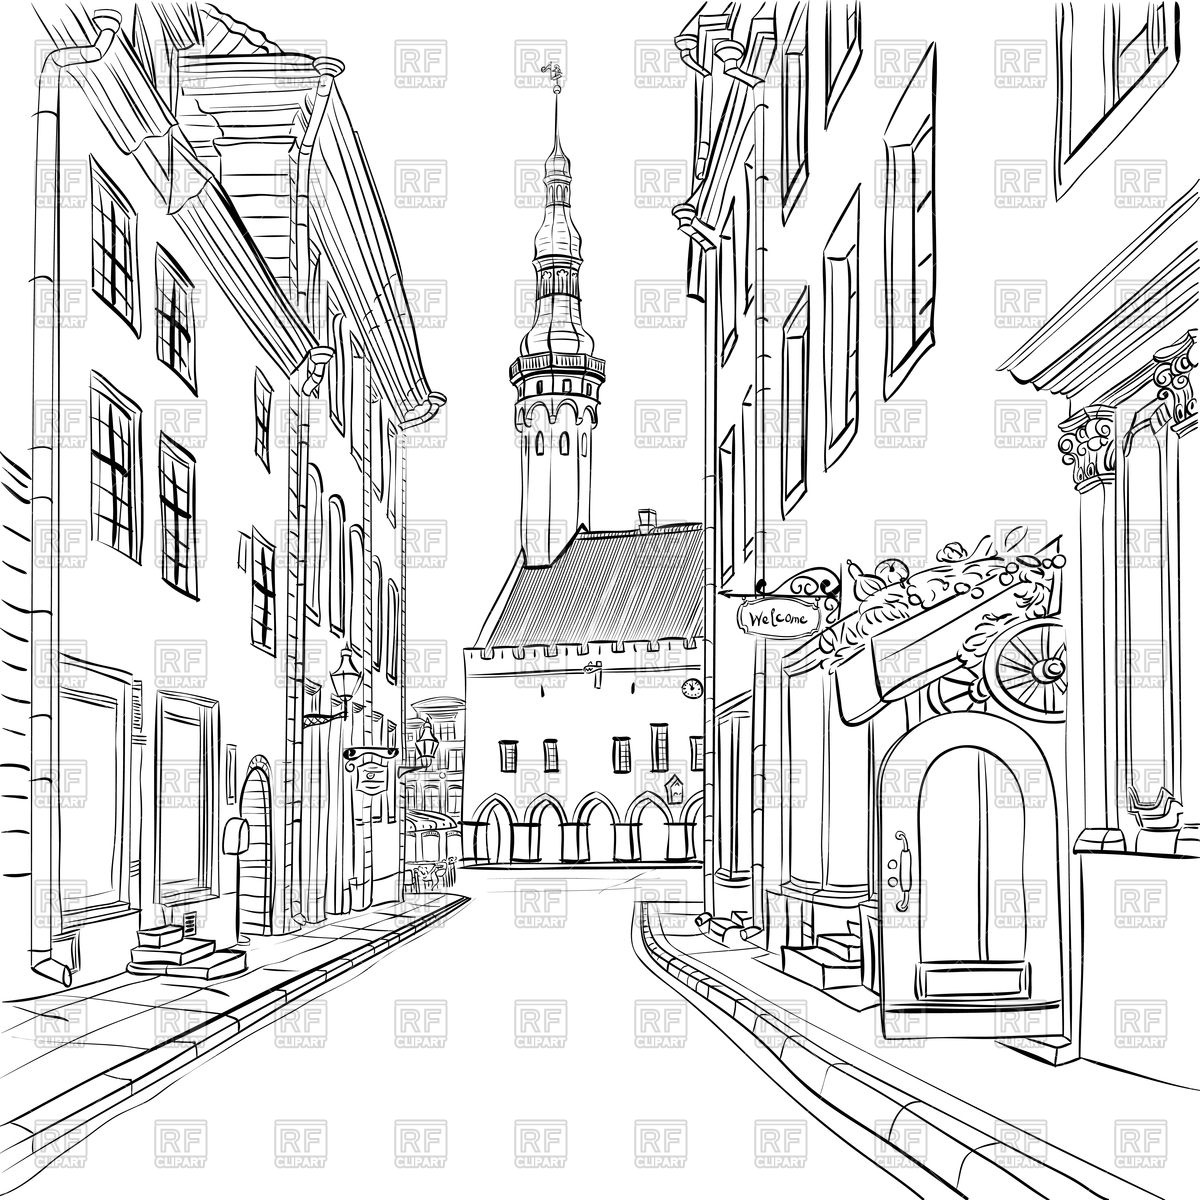 Picturesque view of old town, Tallinn, Estonia Vector Image #94561.